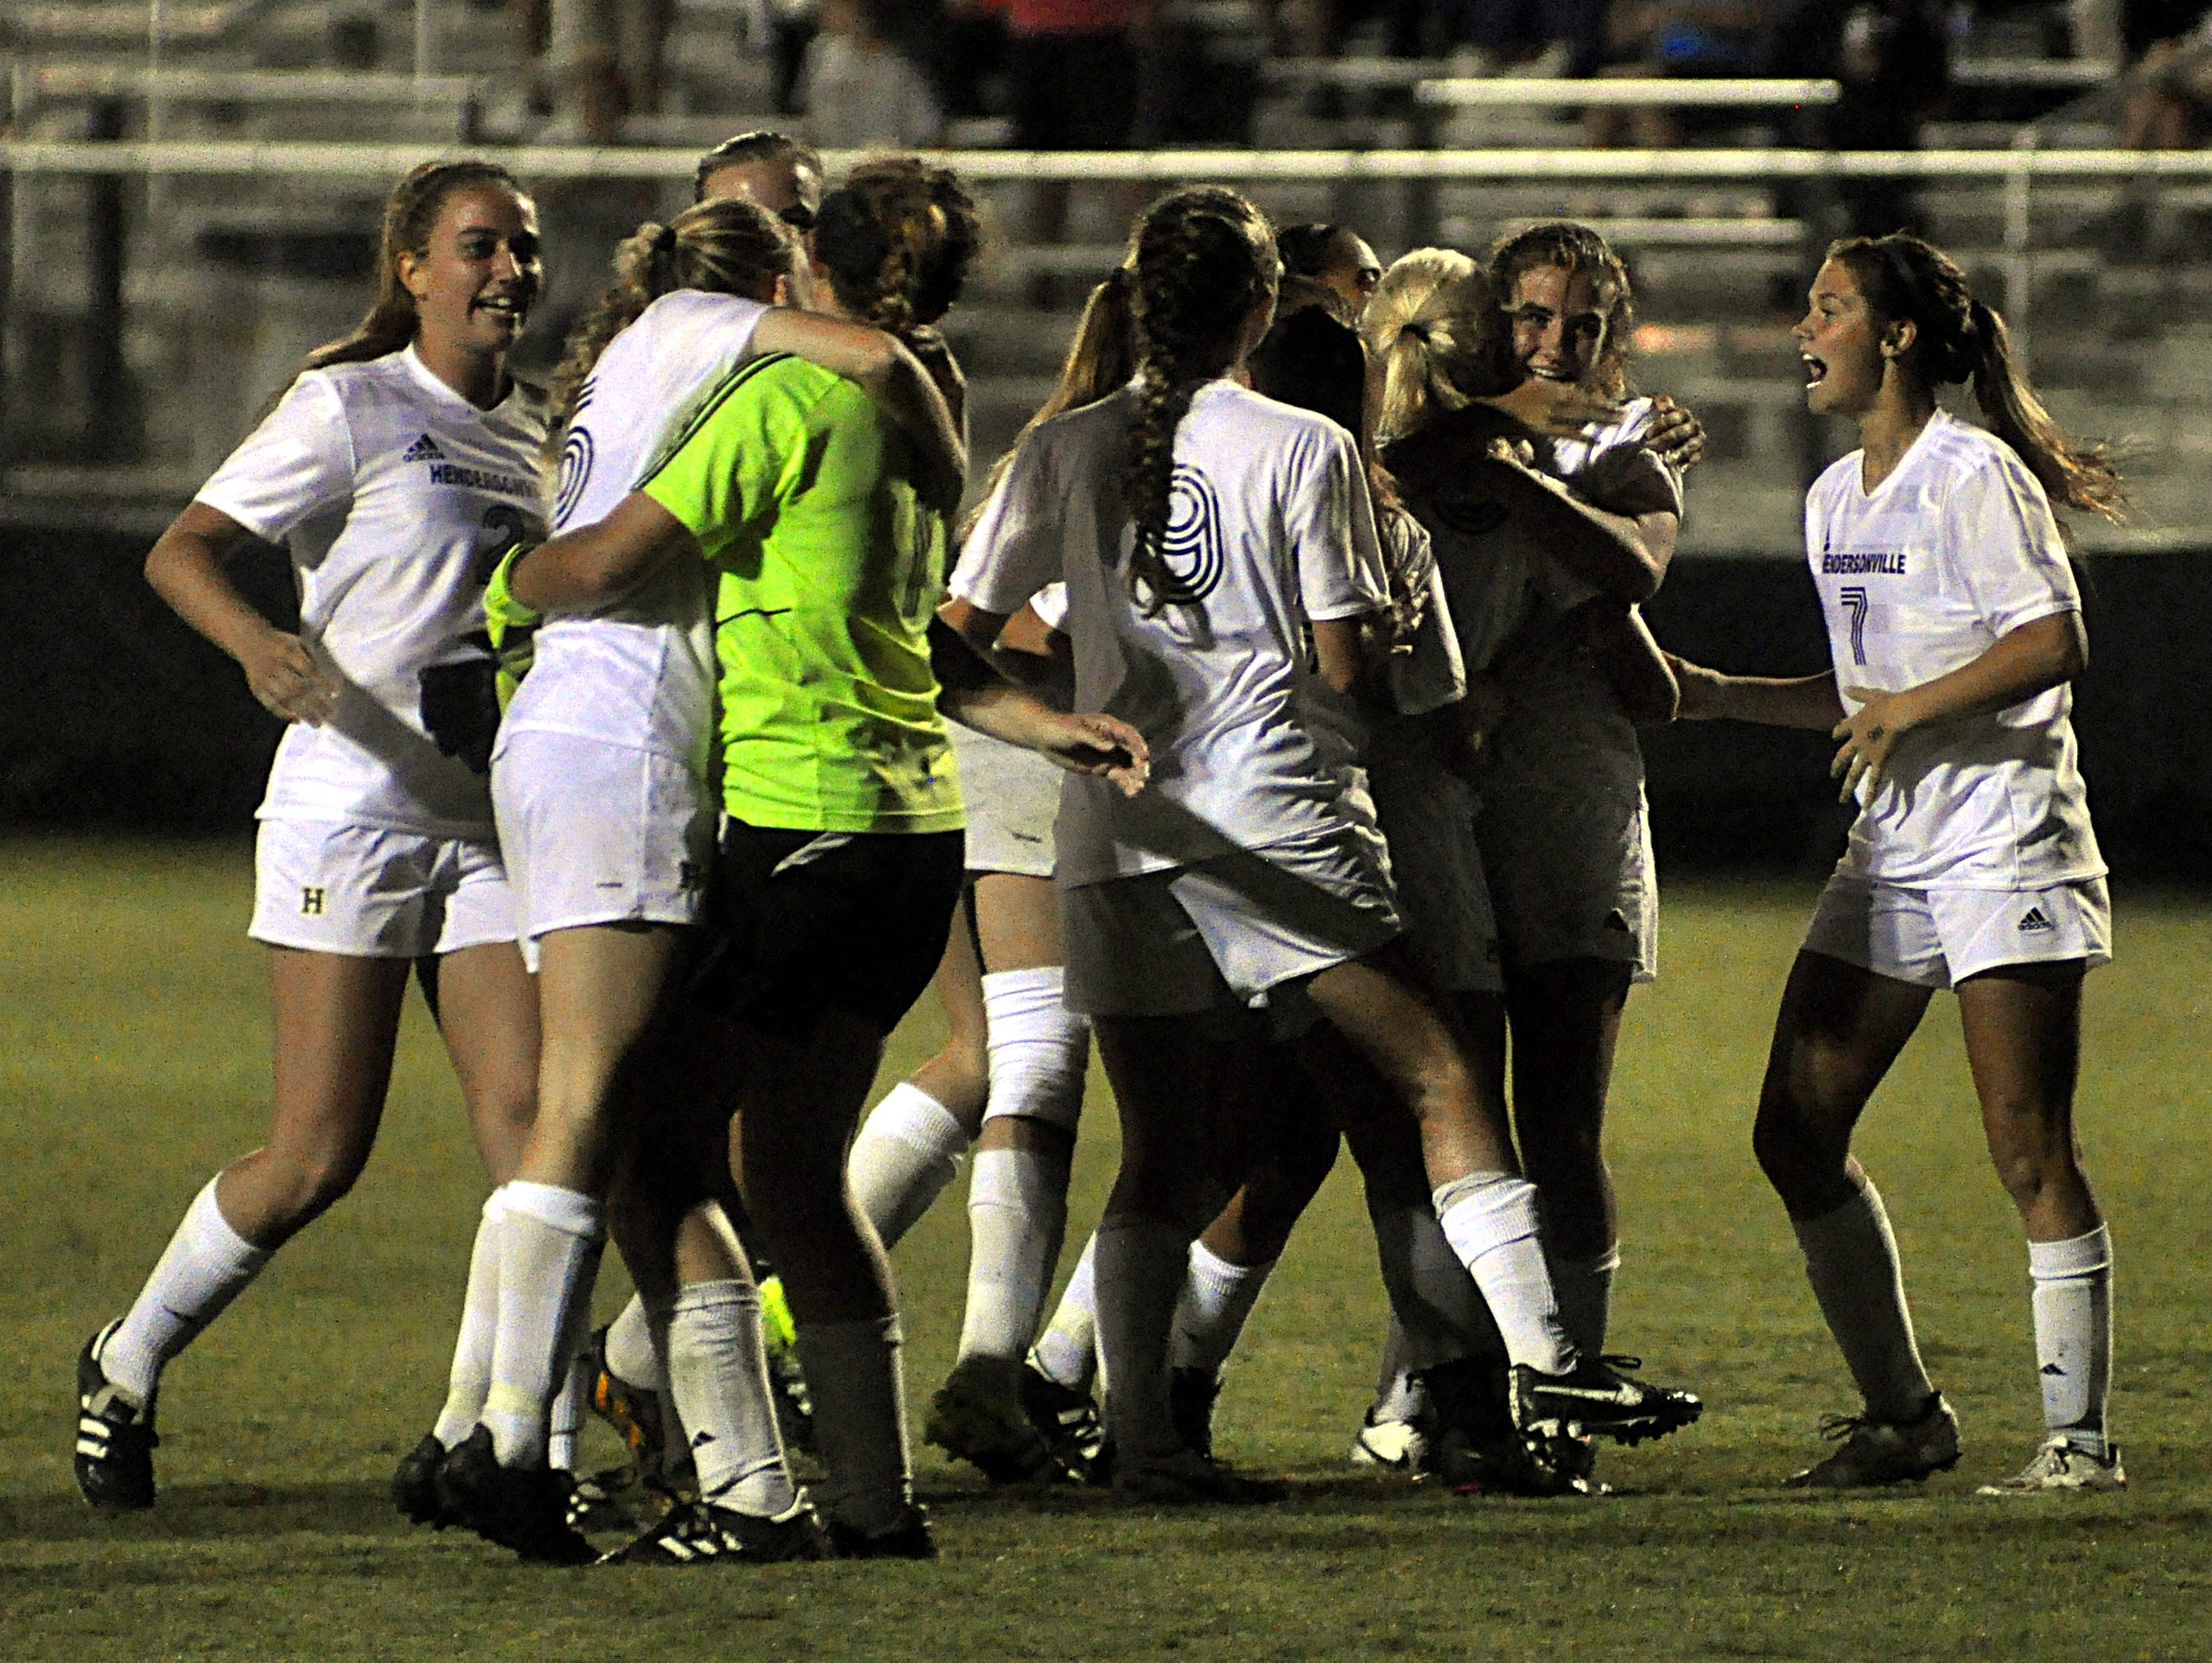 Hendersonville High players celebrate after their 2-1 victory over Station Camp on Tuesday.